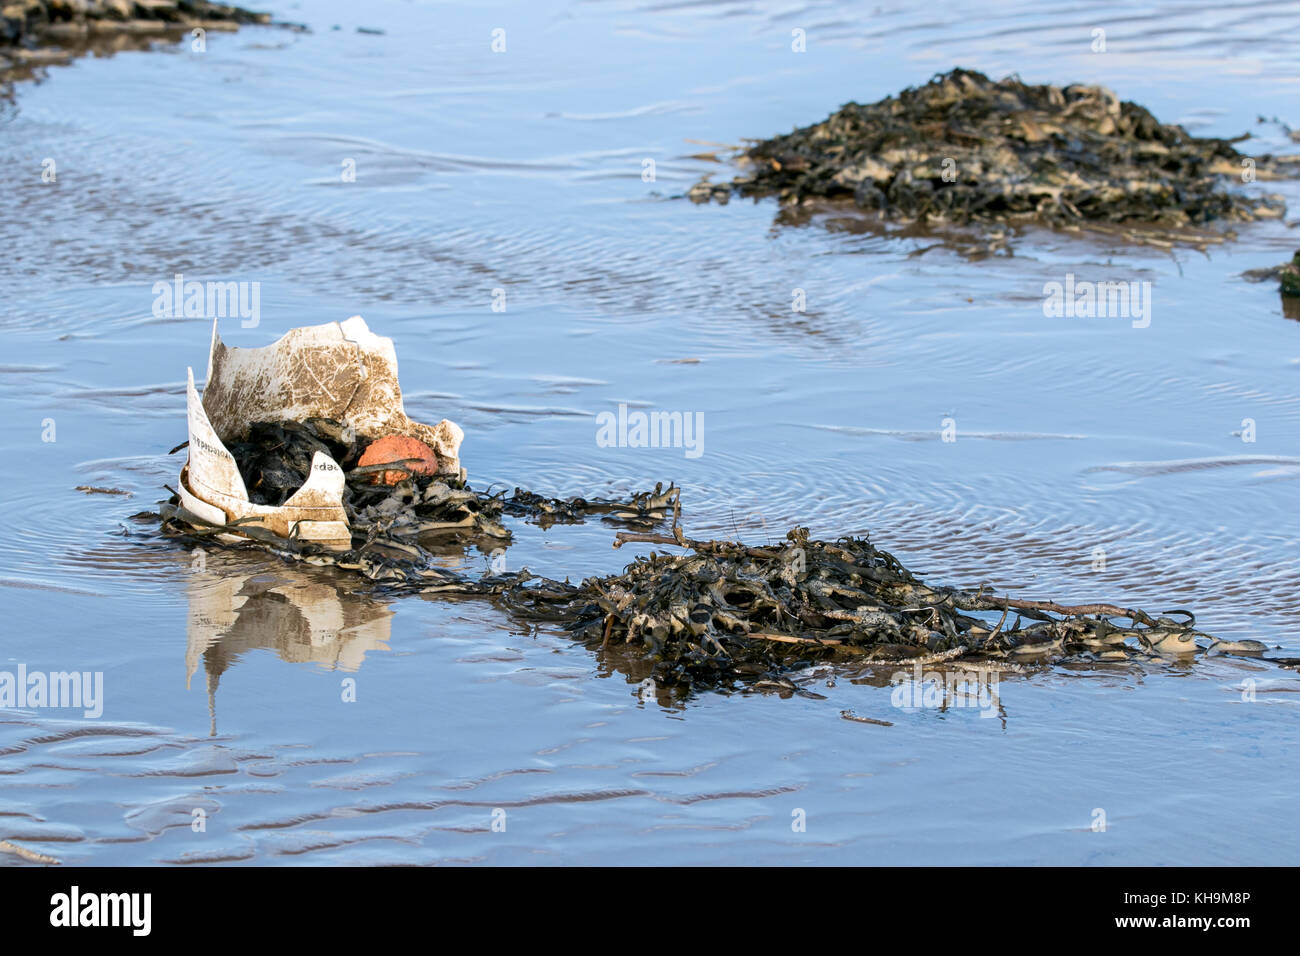 Discarded plastic products washed up on to Southport beach in Merseyside. - Stock Image